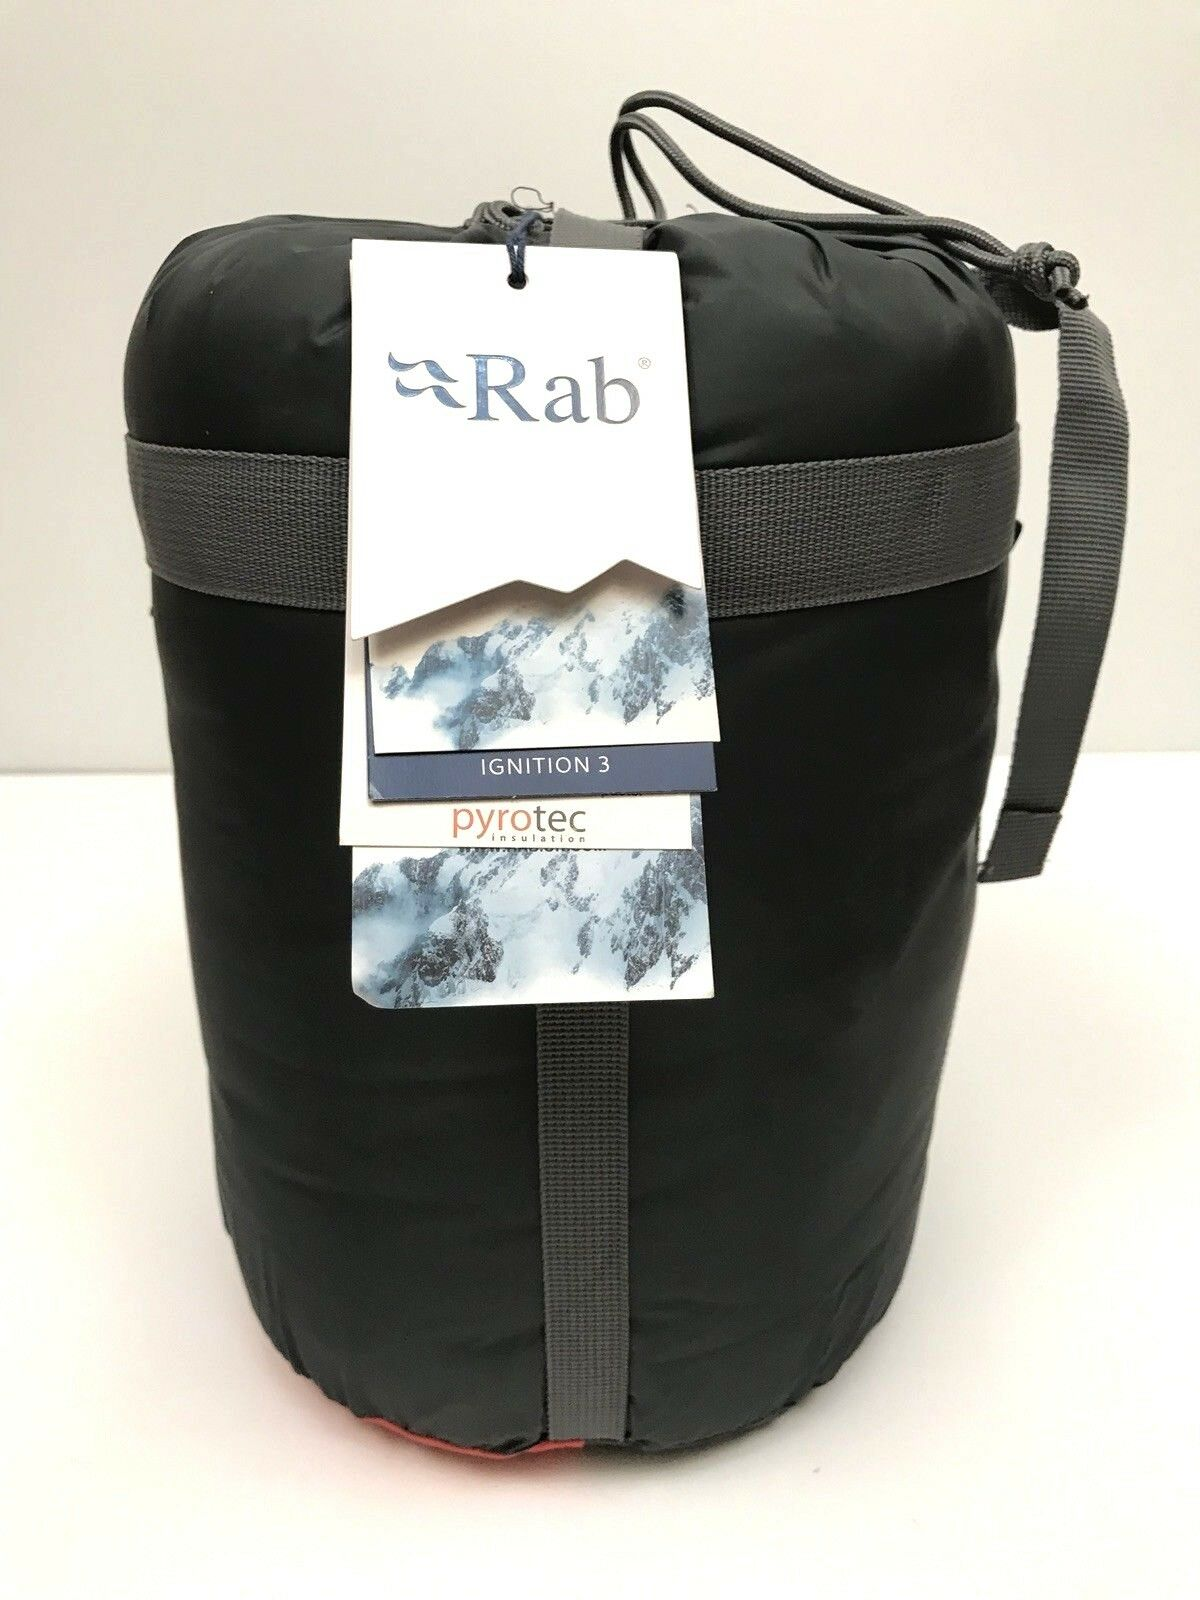 Rab Ignition 3 Sleeping Bag 26 Degree  Synthetic Left Zip Oxide NWT  160 Mummy  large selection